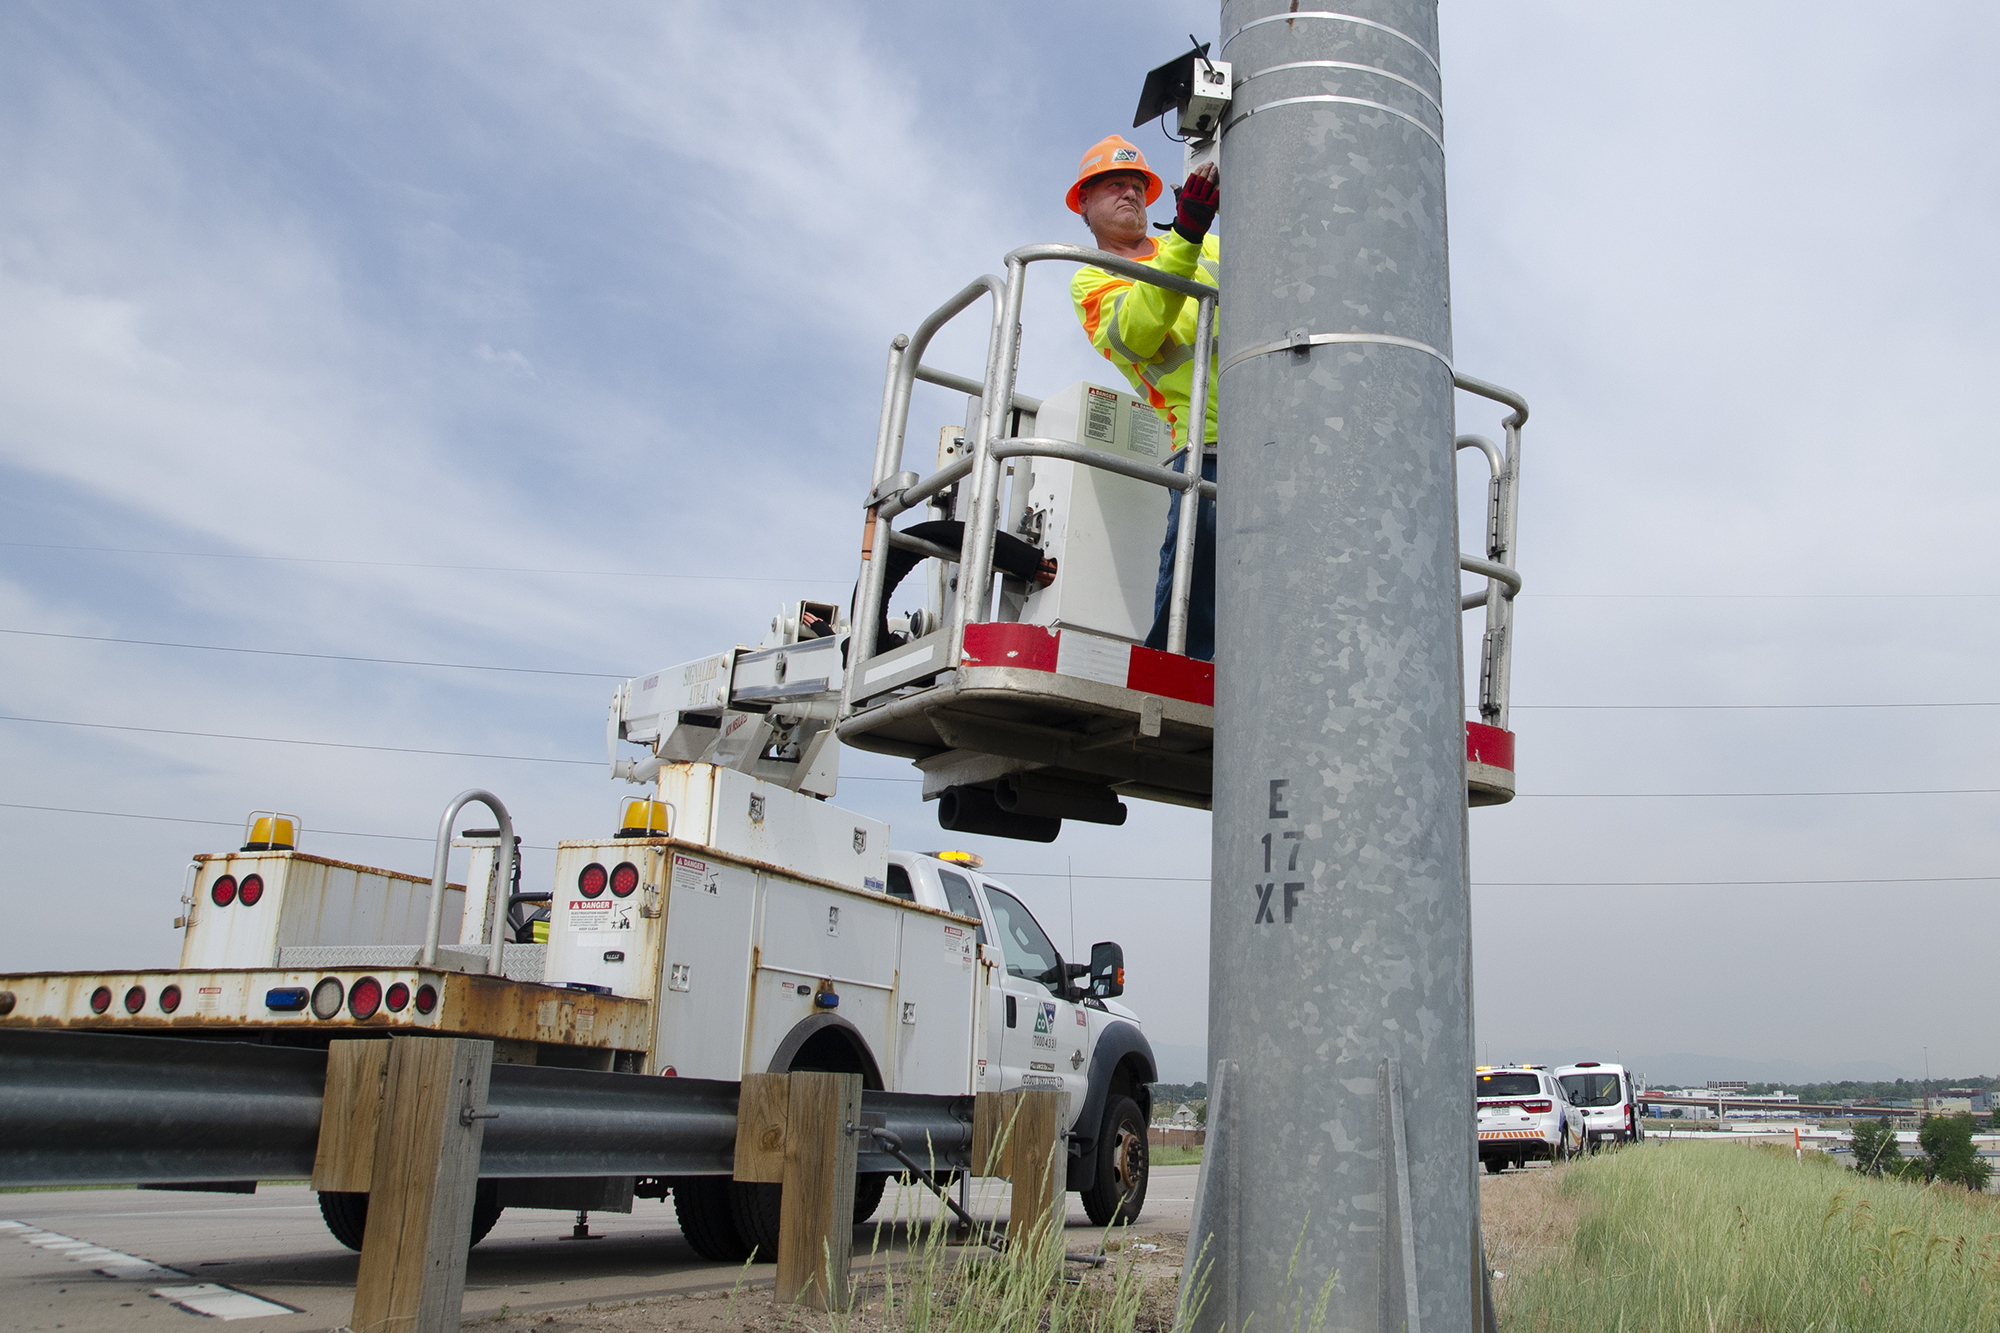 The installation of an air quality monitor on a post off the shoulder of Interstate 270 in Commerce City, Colo. on June 23, 2021.